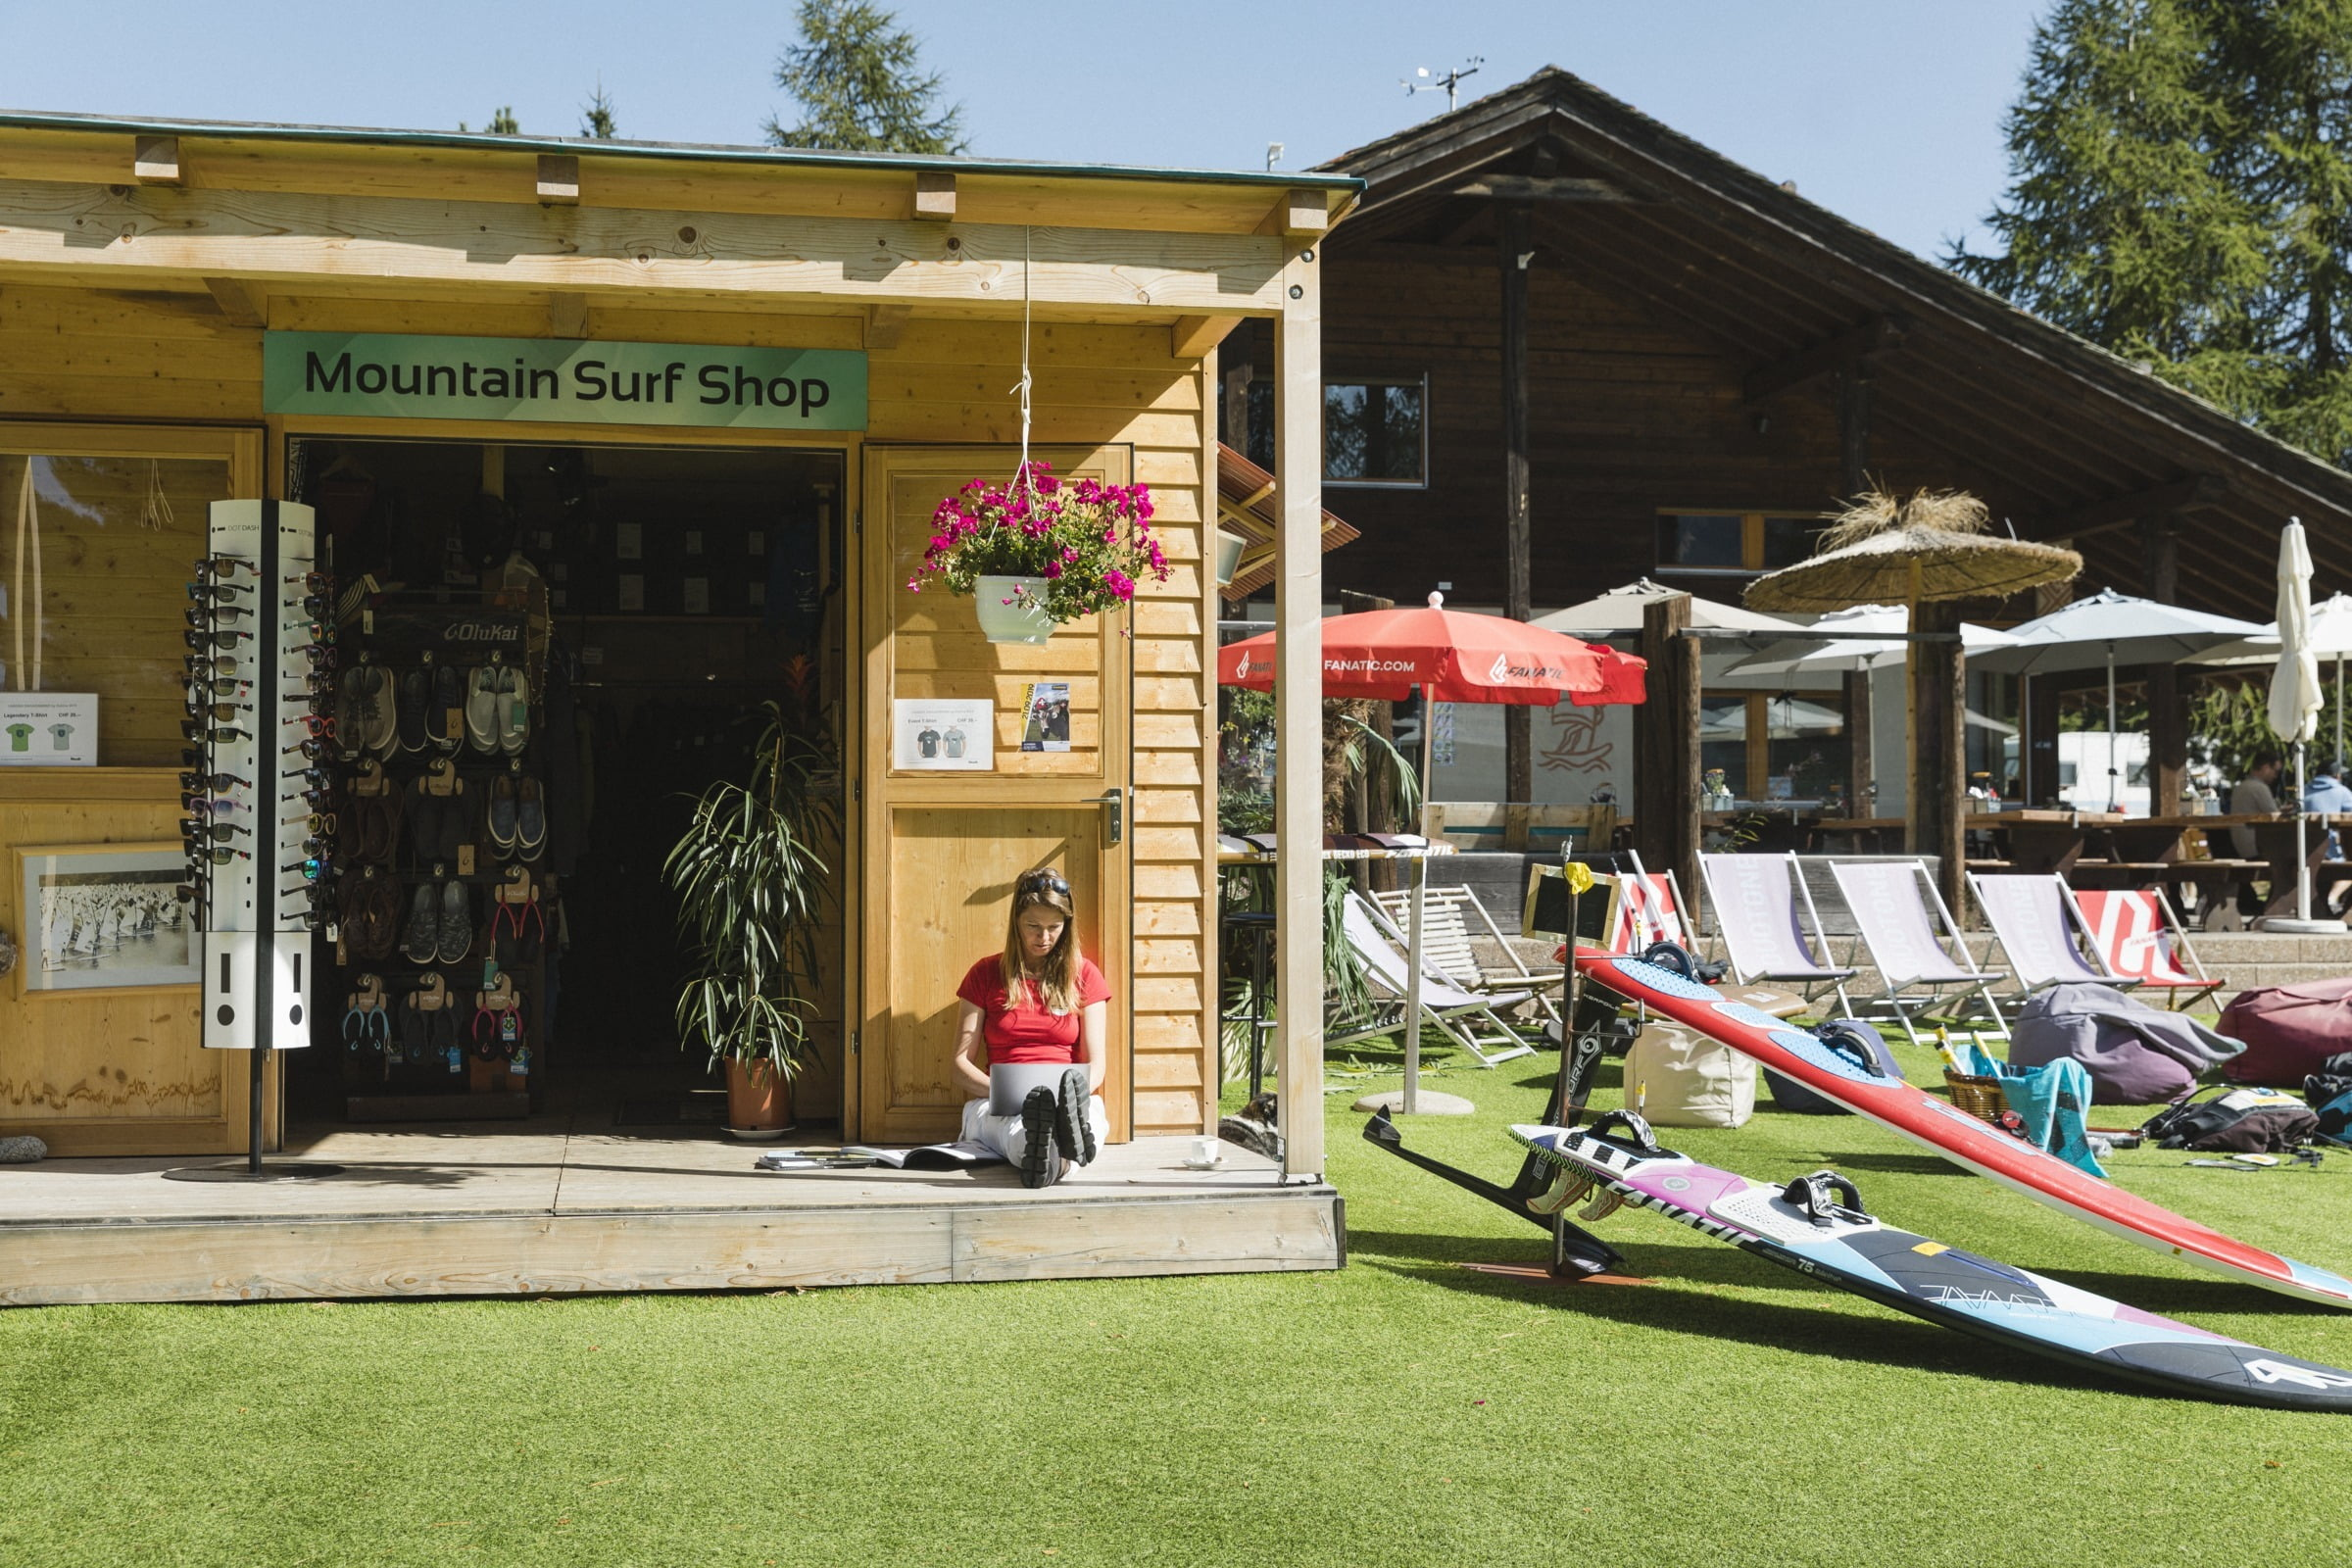 Mountain Surf Shop, Silvaplana